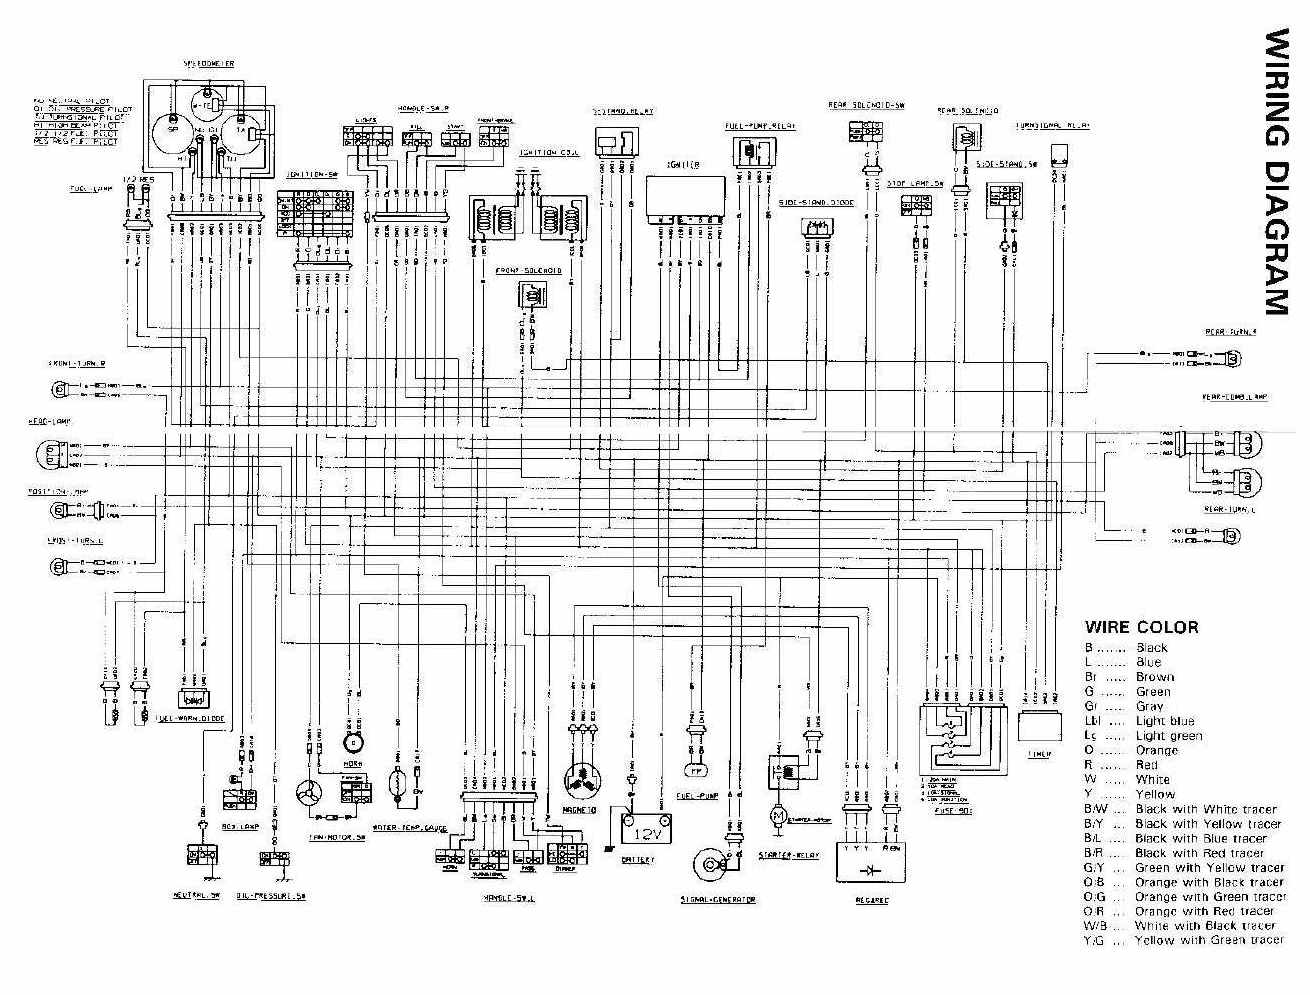 Sensational 91 Suzuki Gsxr 1100 Wiring Diagram 91 Get Free Image About Wiring Wiring Digital Resources Ommitdefiancerspsorg